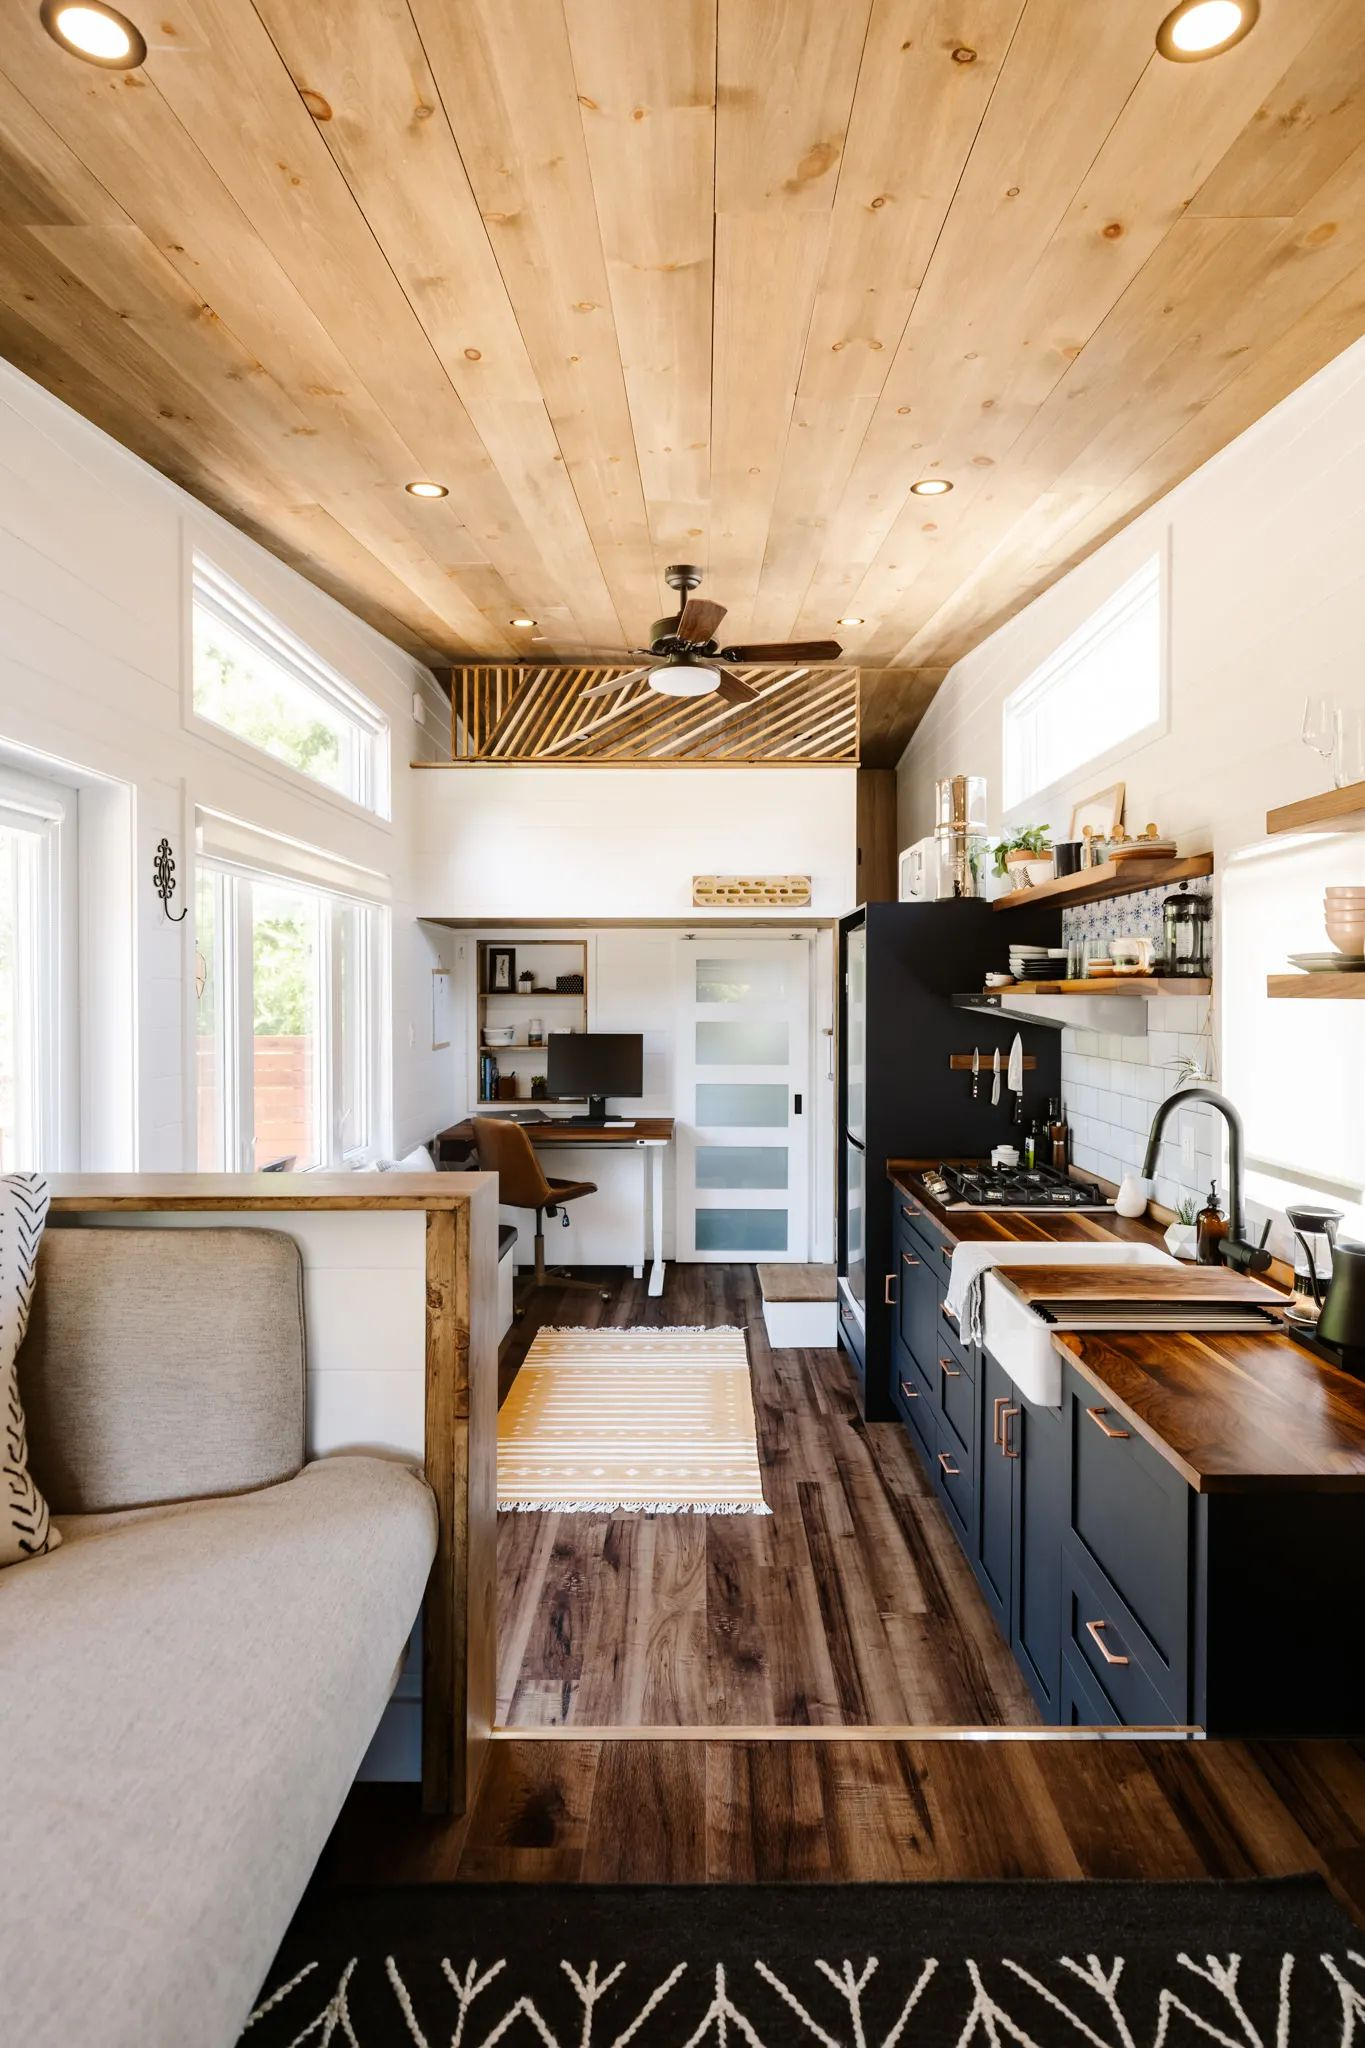 Wooden Tiny Home Inspiration Tiny House Living Tiny House Interior Design Tiny House Interior